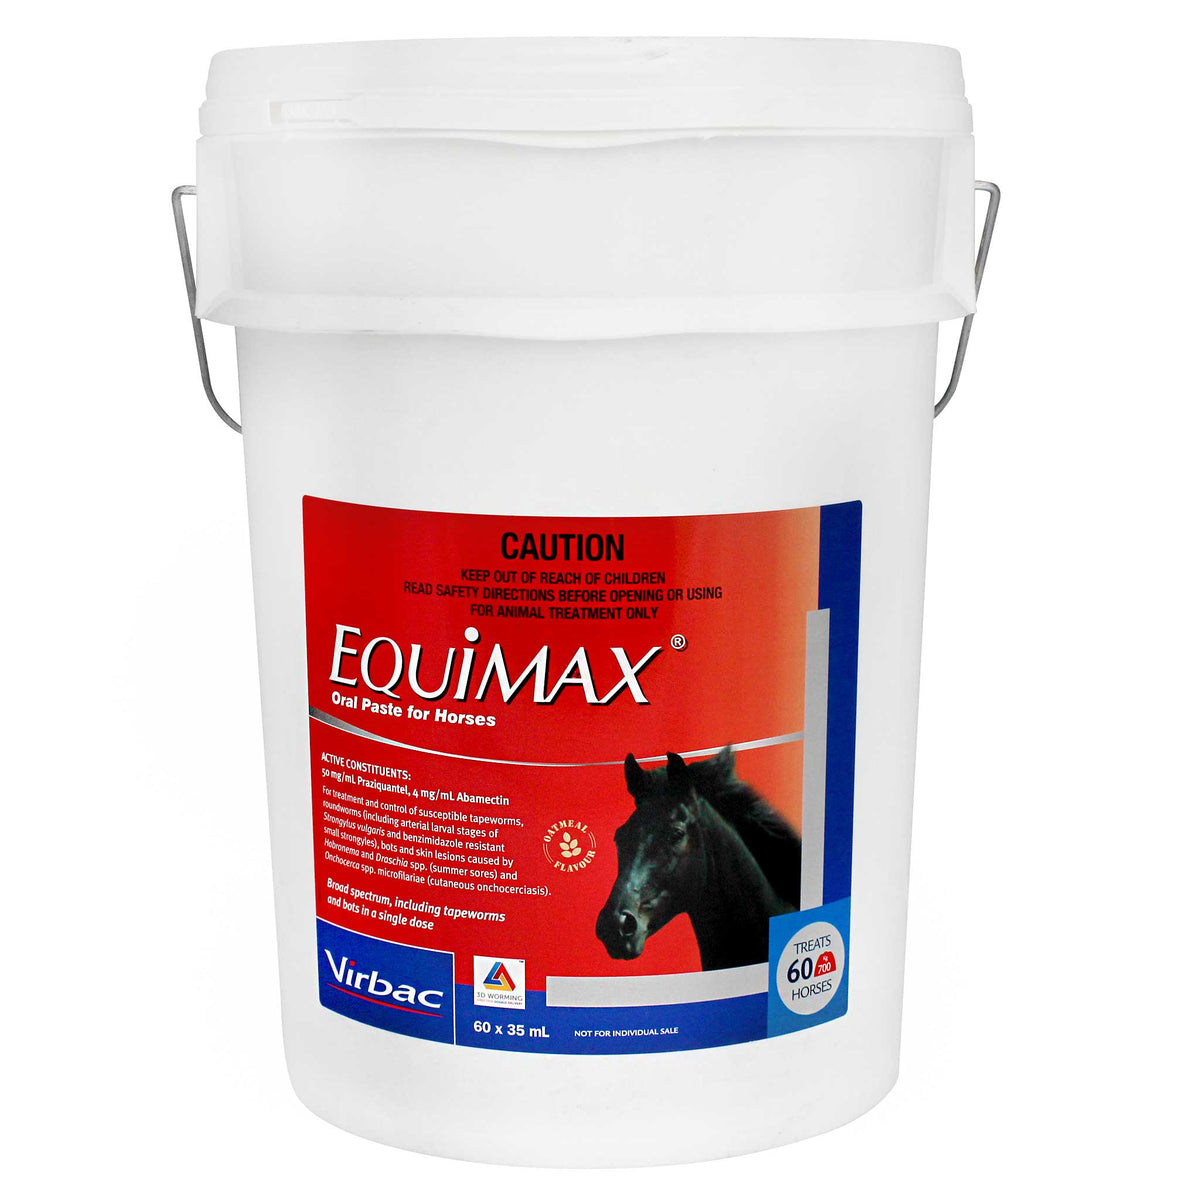 Equimax Oral Paste for Horses - Stable Pail 60 syringes